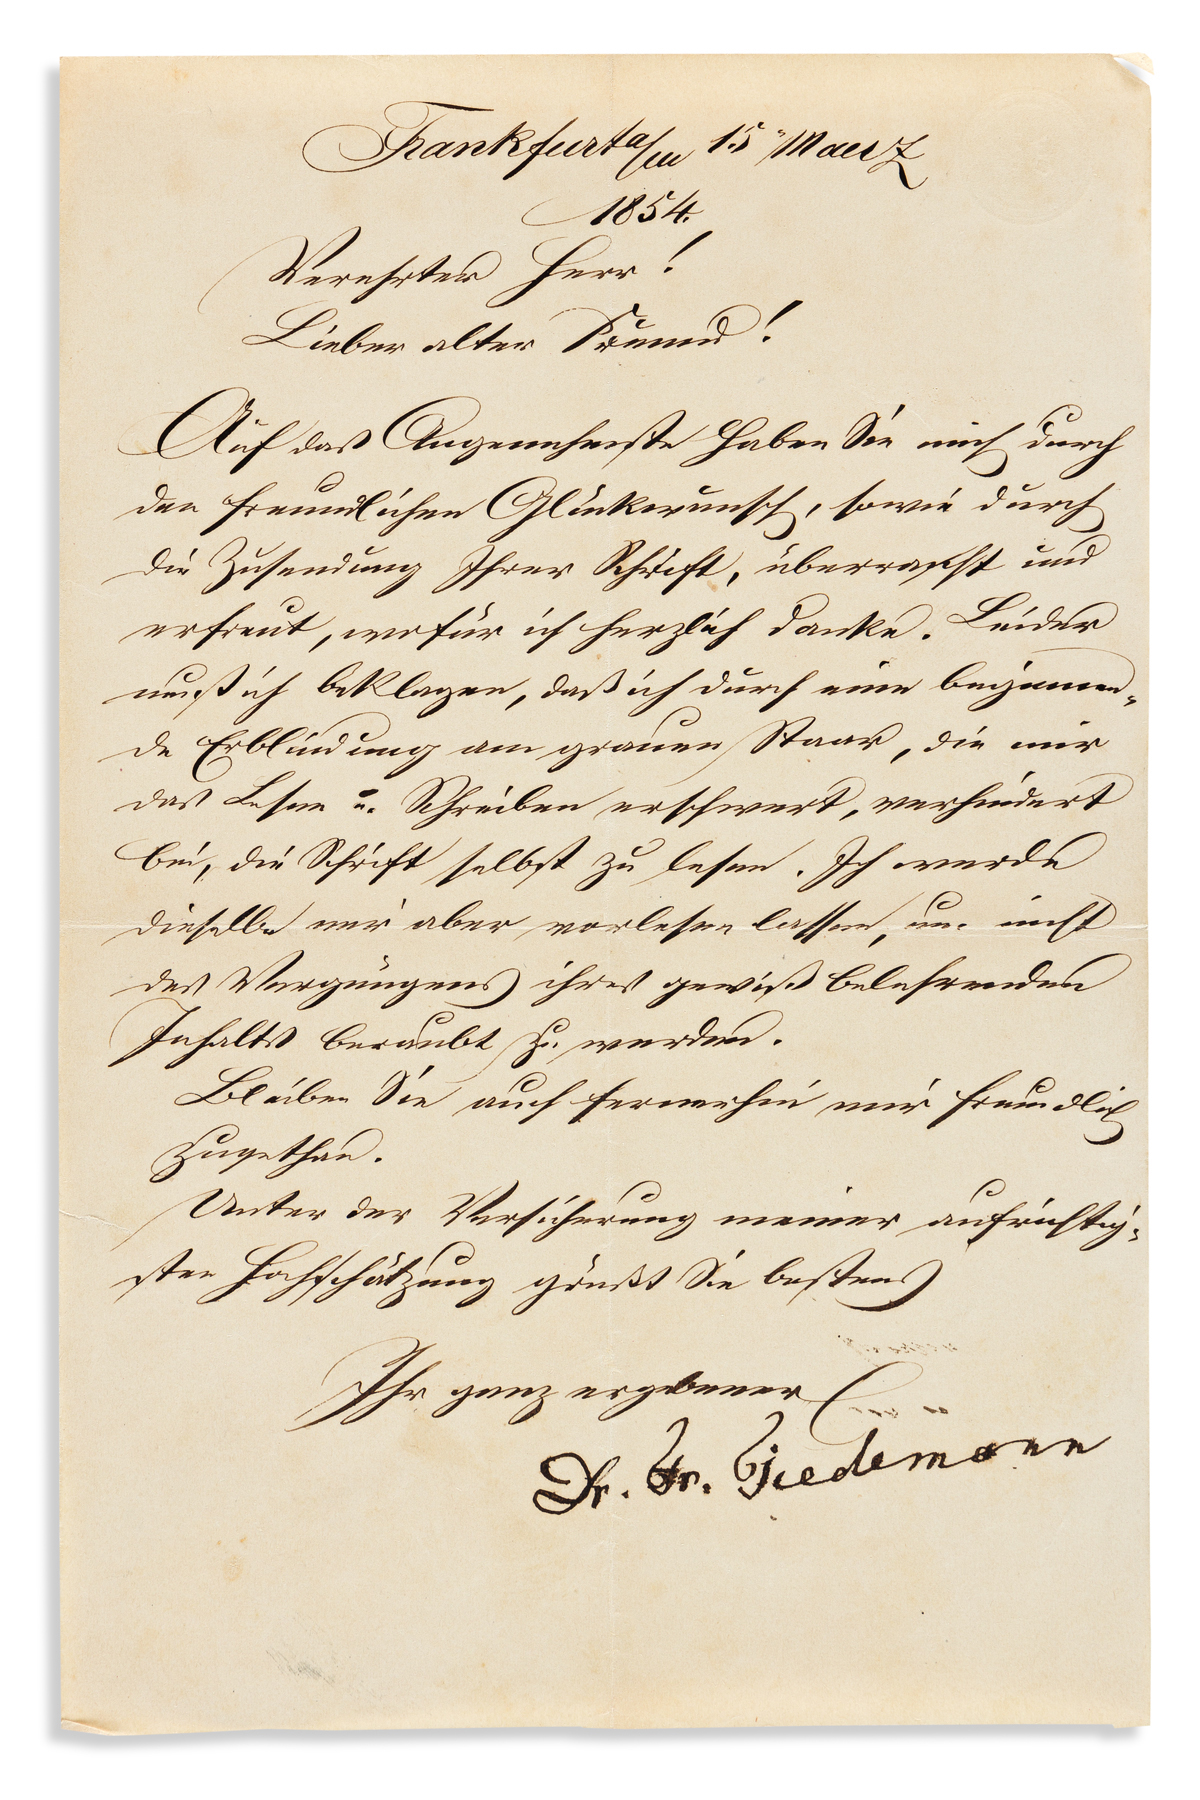 (MEDICINE.) Group of over 40 items Signed, Inscribed, or Signed and Inscribed, by mostly 19th- and 20th-century American or European ph